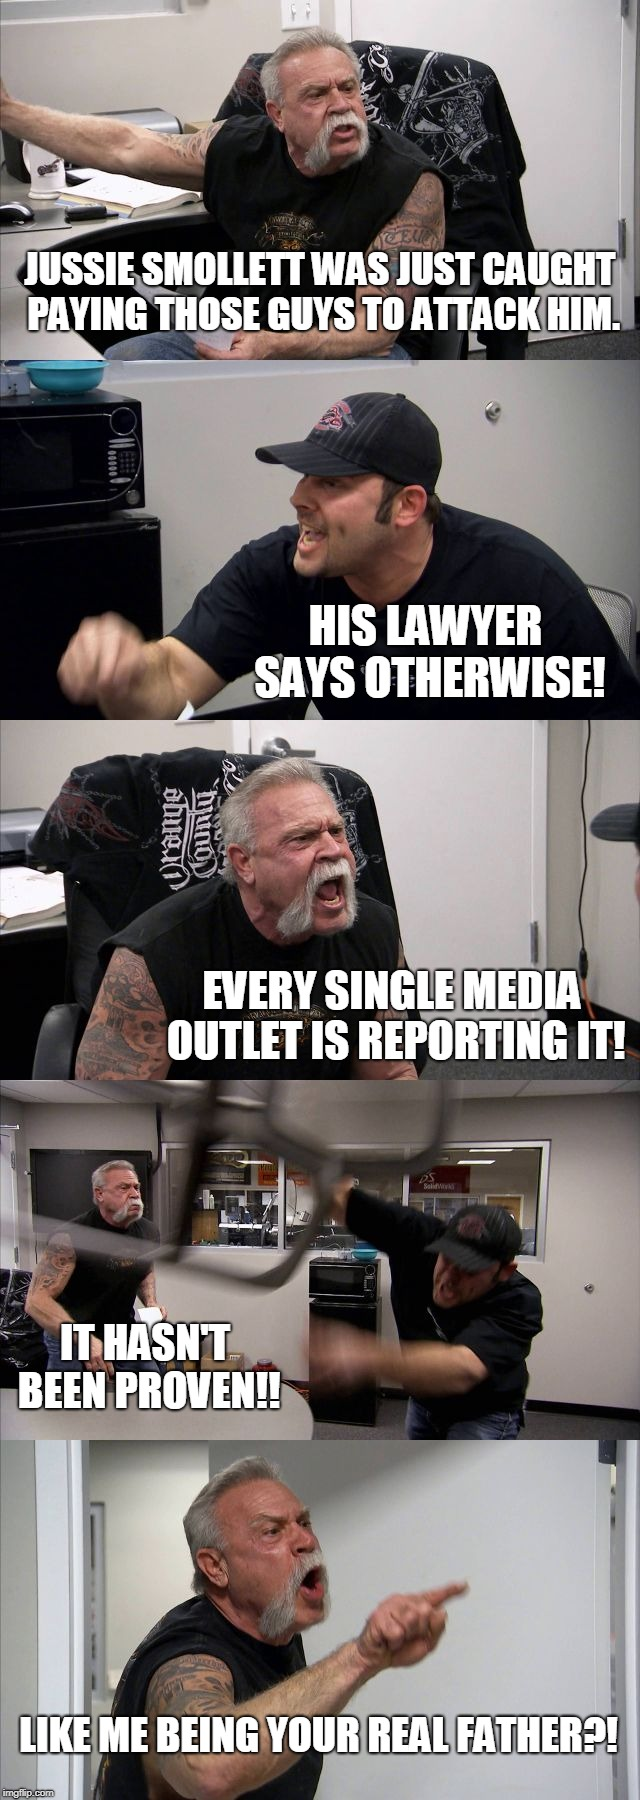 American Chopper Argument Meme | JUSSIE SMOLLETT WAS JUST CAUGHT PAYING THOSE GUYS TO ATTACK HIM. HIS LAWYER SAYS OTHERWISE! EVERY SINGLE MEDIA OUTLET IS REPORTING IT! IT HA | image tagged in memes,american chopper argument | made w/ Imgflip meme maker